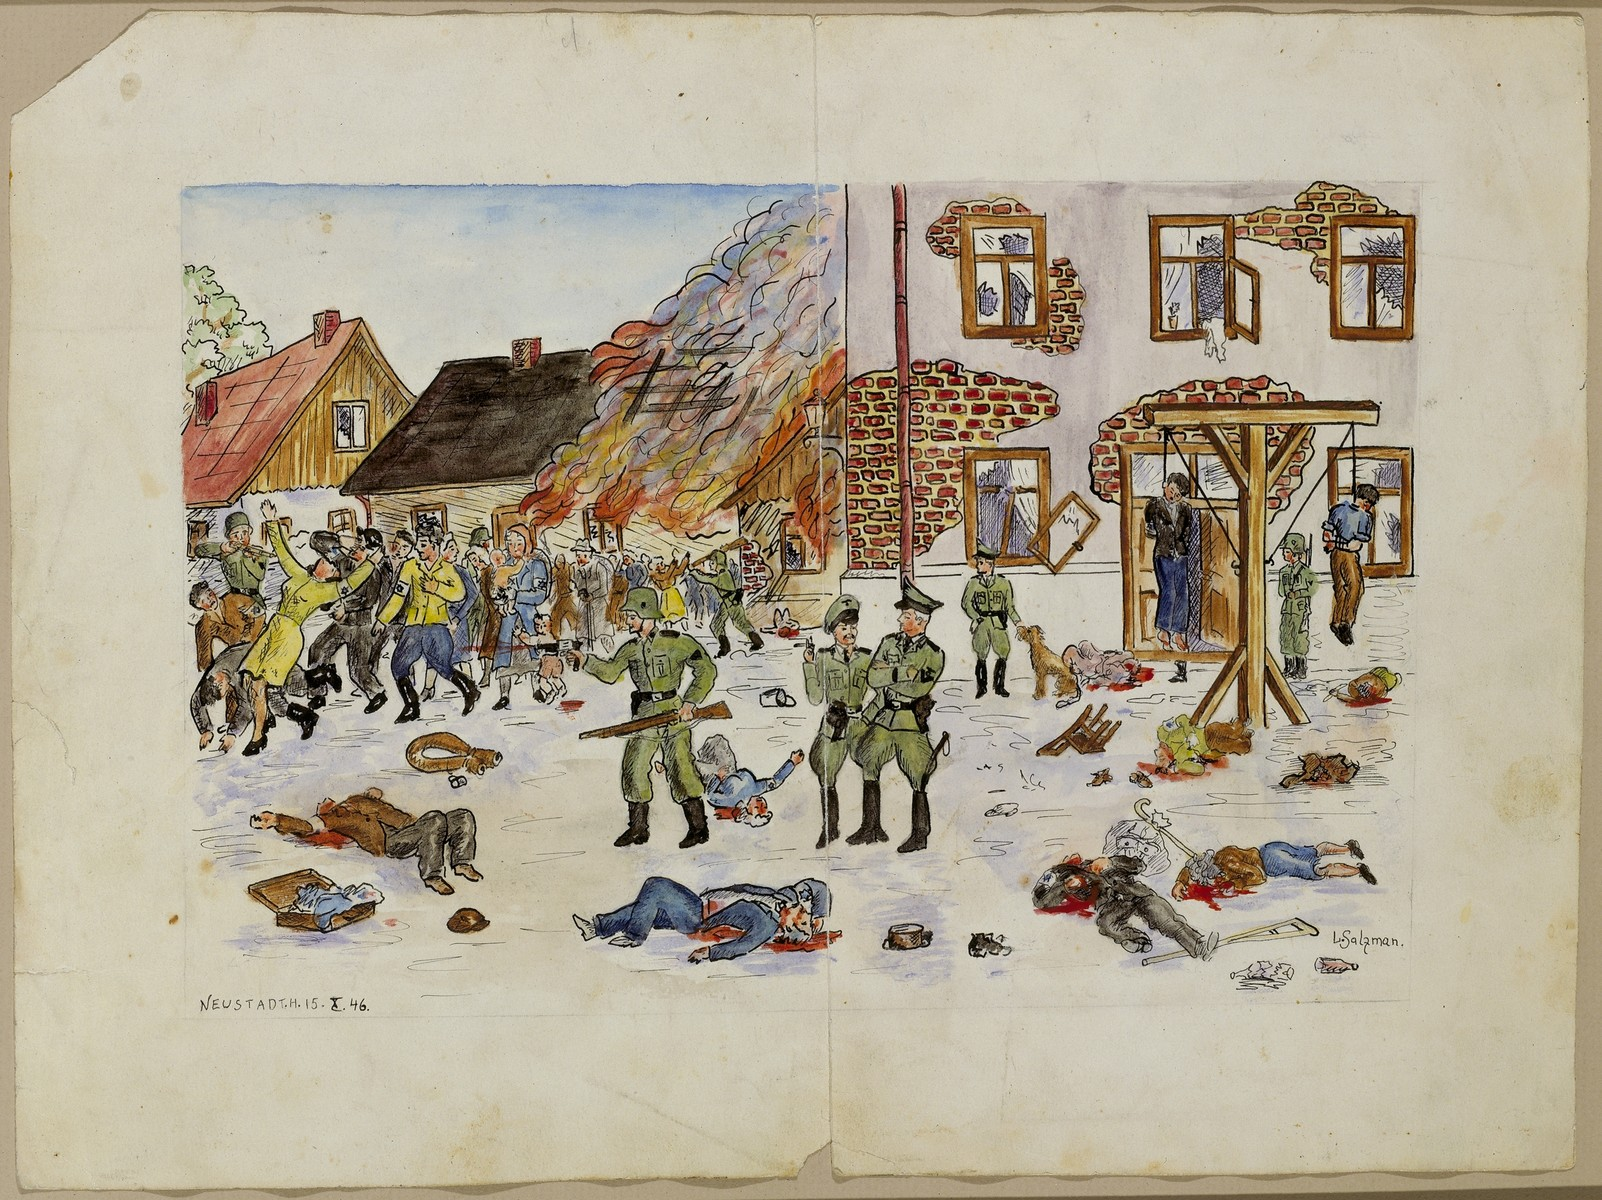 Drawing of an evacuation of a ghetto by George L. Salton.